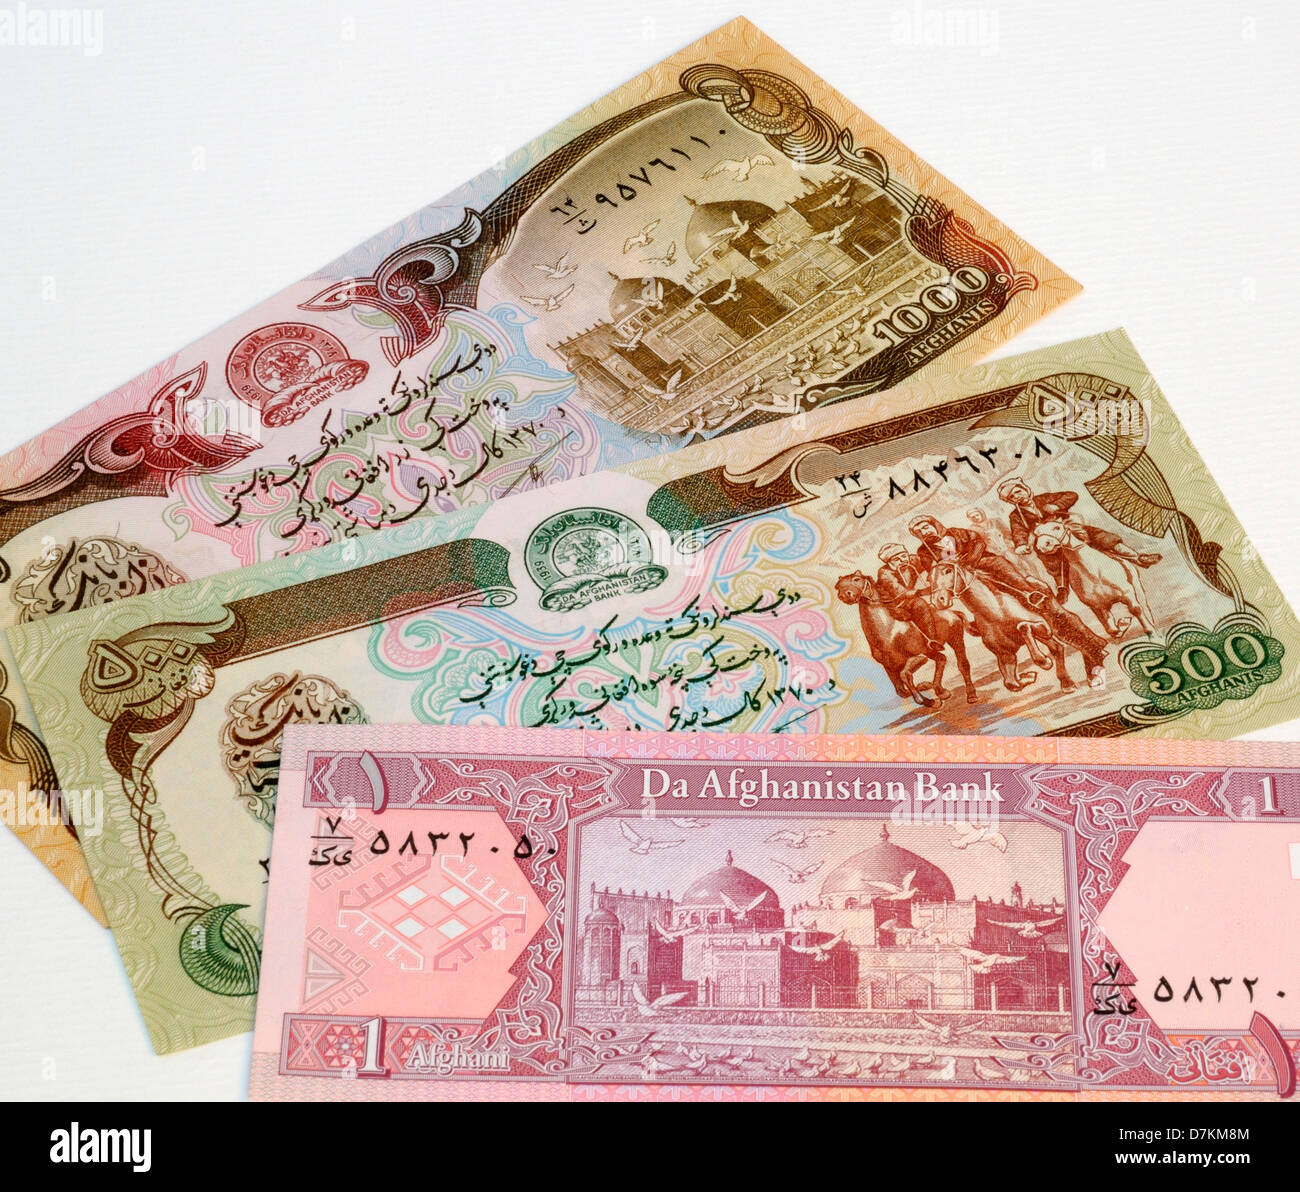 Afghanistan Bank Notes - Stock Image